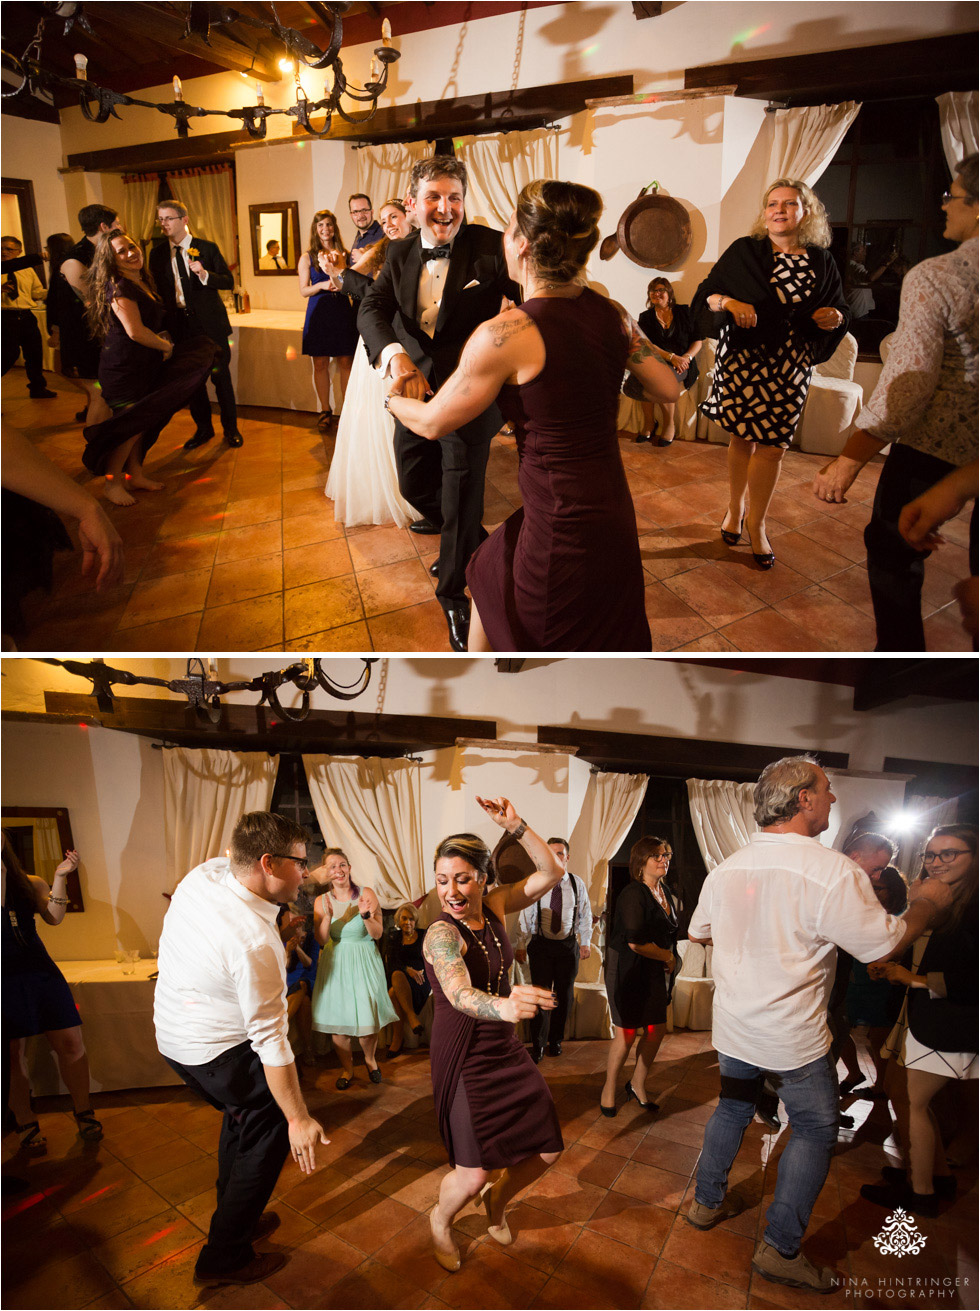 Dancing time at Villa Damiani in Italy, Bassano del Grappa - Blog of Nina Hintringer Photography - Wedding Photography, Wedding Reportage and Destination Weddings